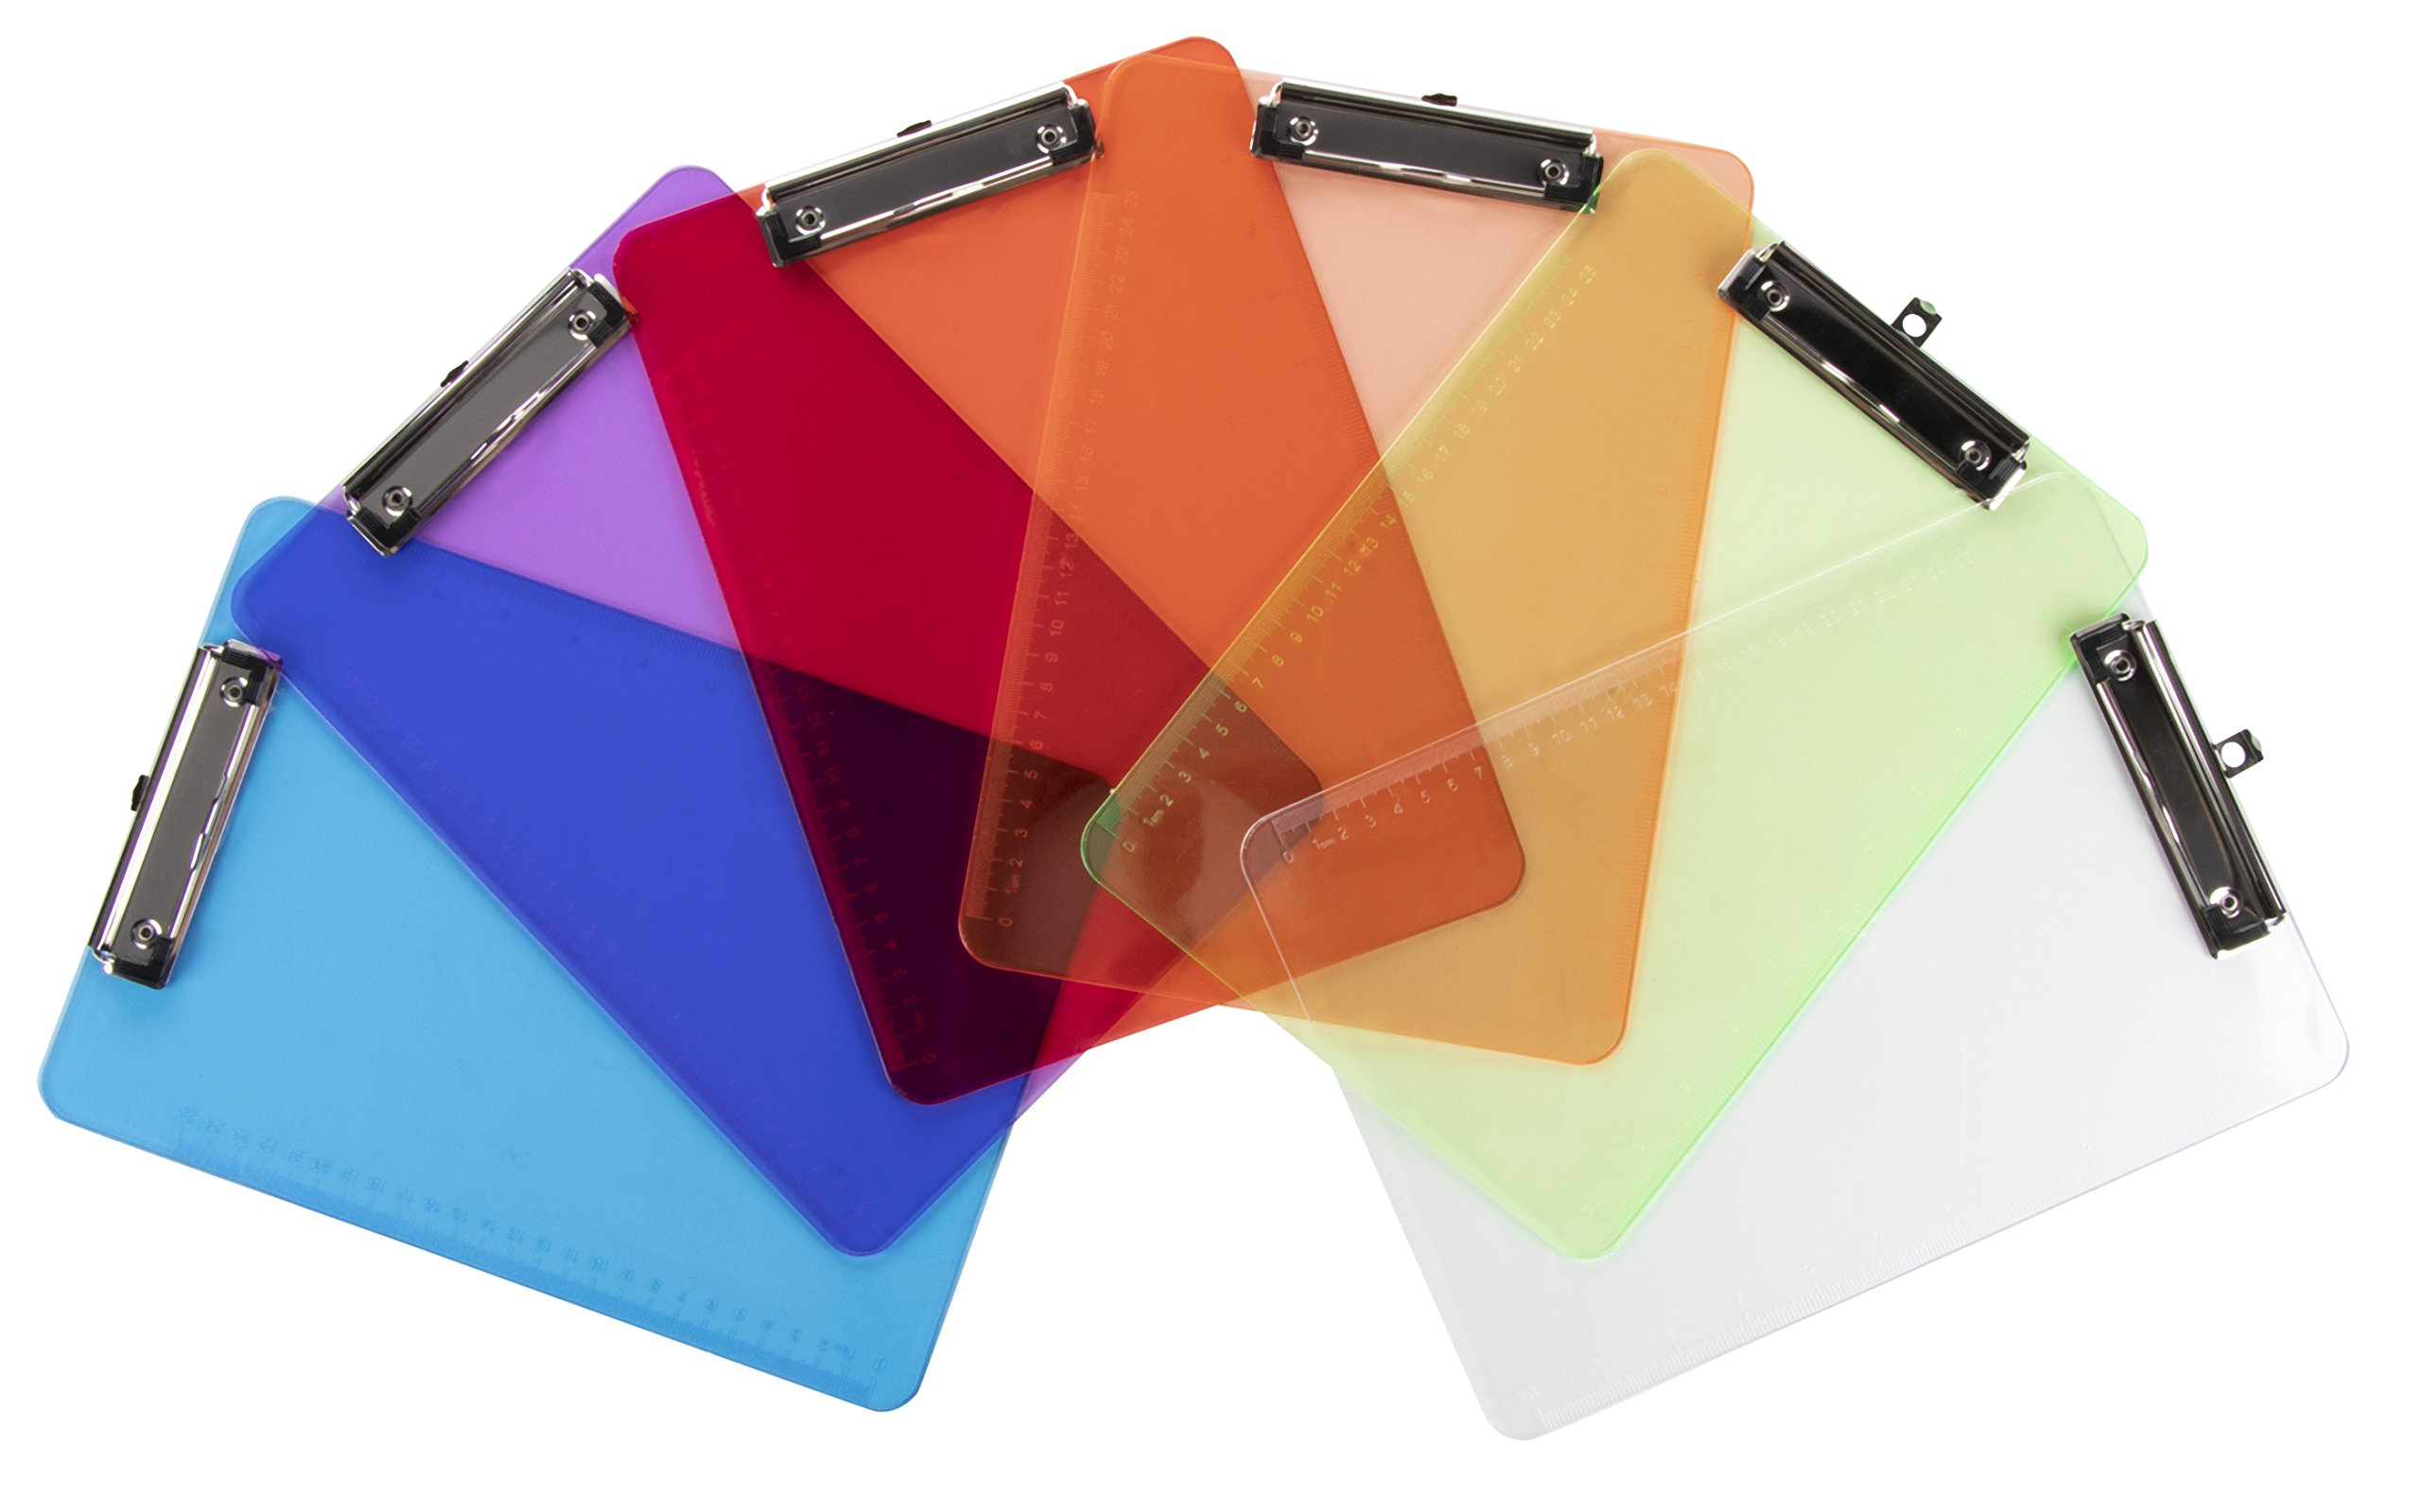 Plastic Letter Size Clipboard with Low Profile Clip and Rulers - 6-Pack Colorful Transparent Clip Boards for Classroom and Office, 6 Assorted Colors, Ruler of Inch and cm Scales, 9 x 12.5 Inches